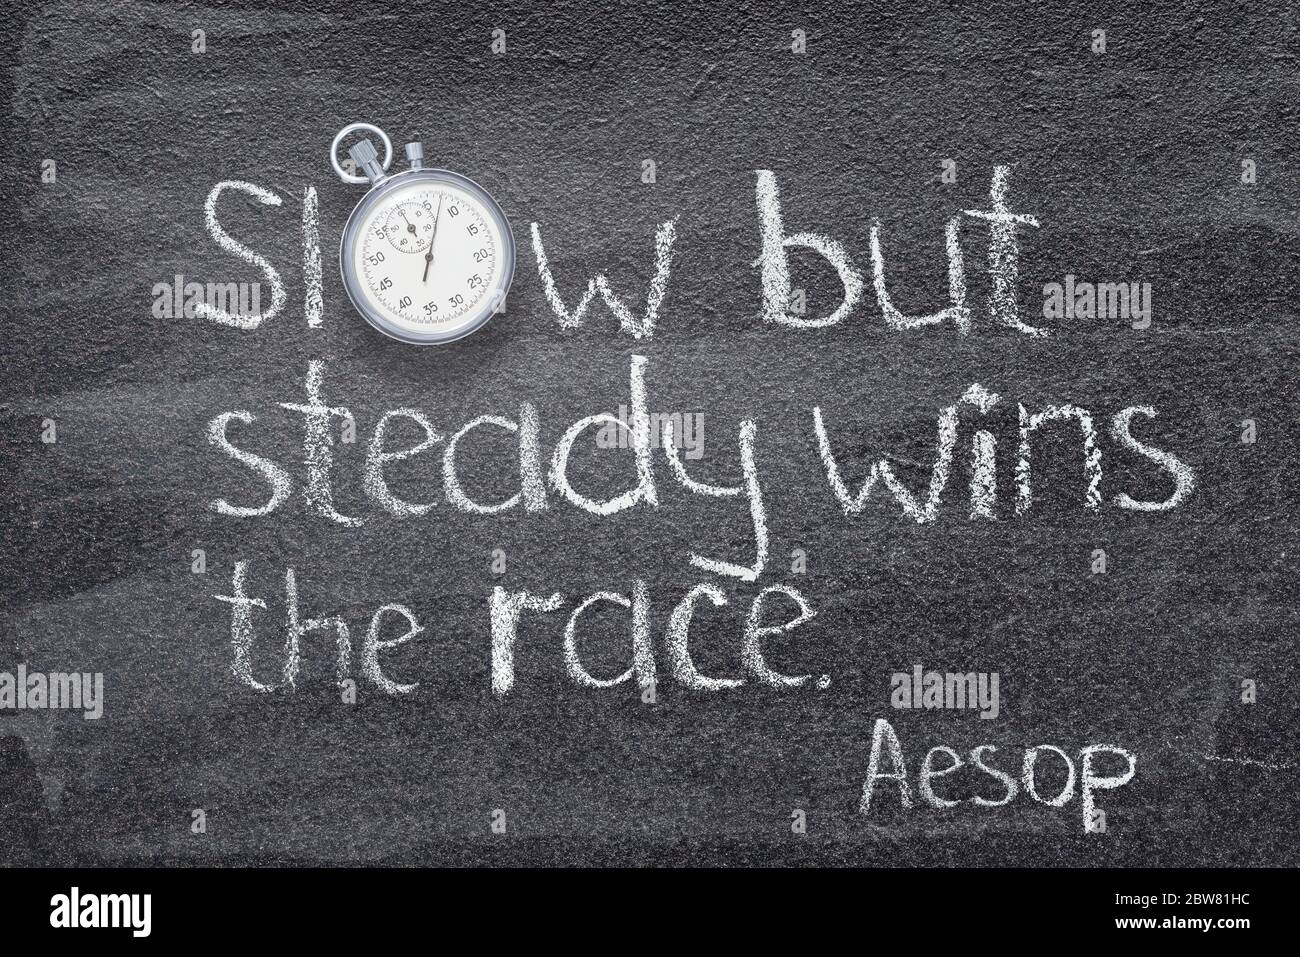 Slow And Steady Wins The Race High Resolution Stock Photography And Images Alamy